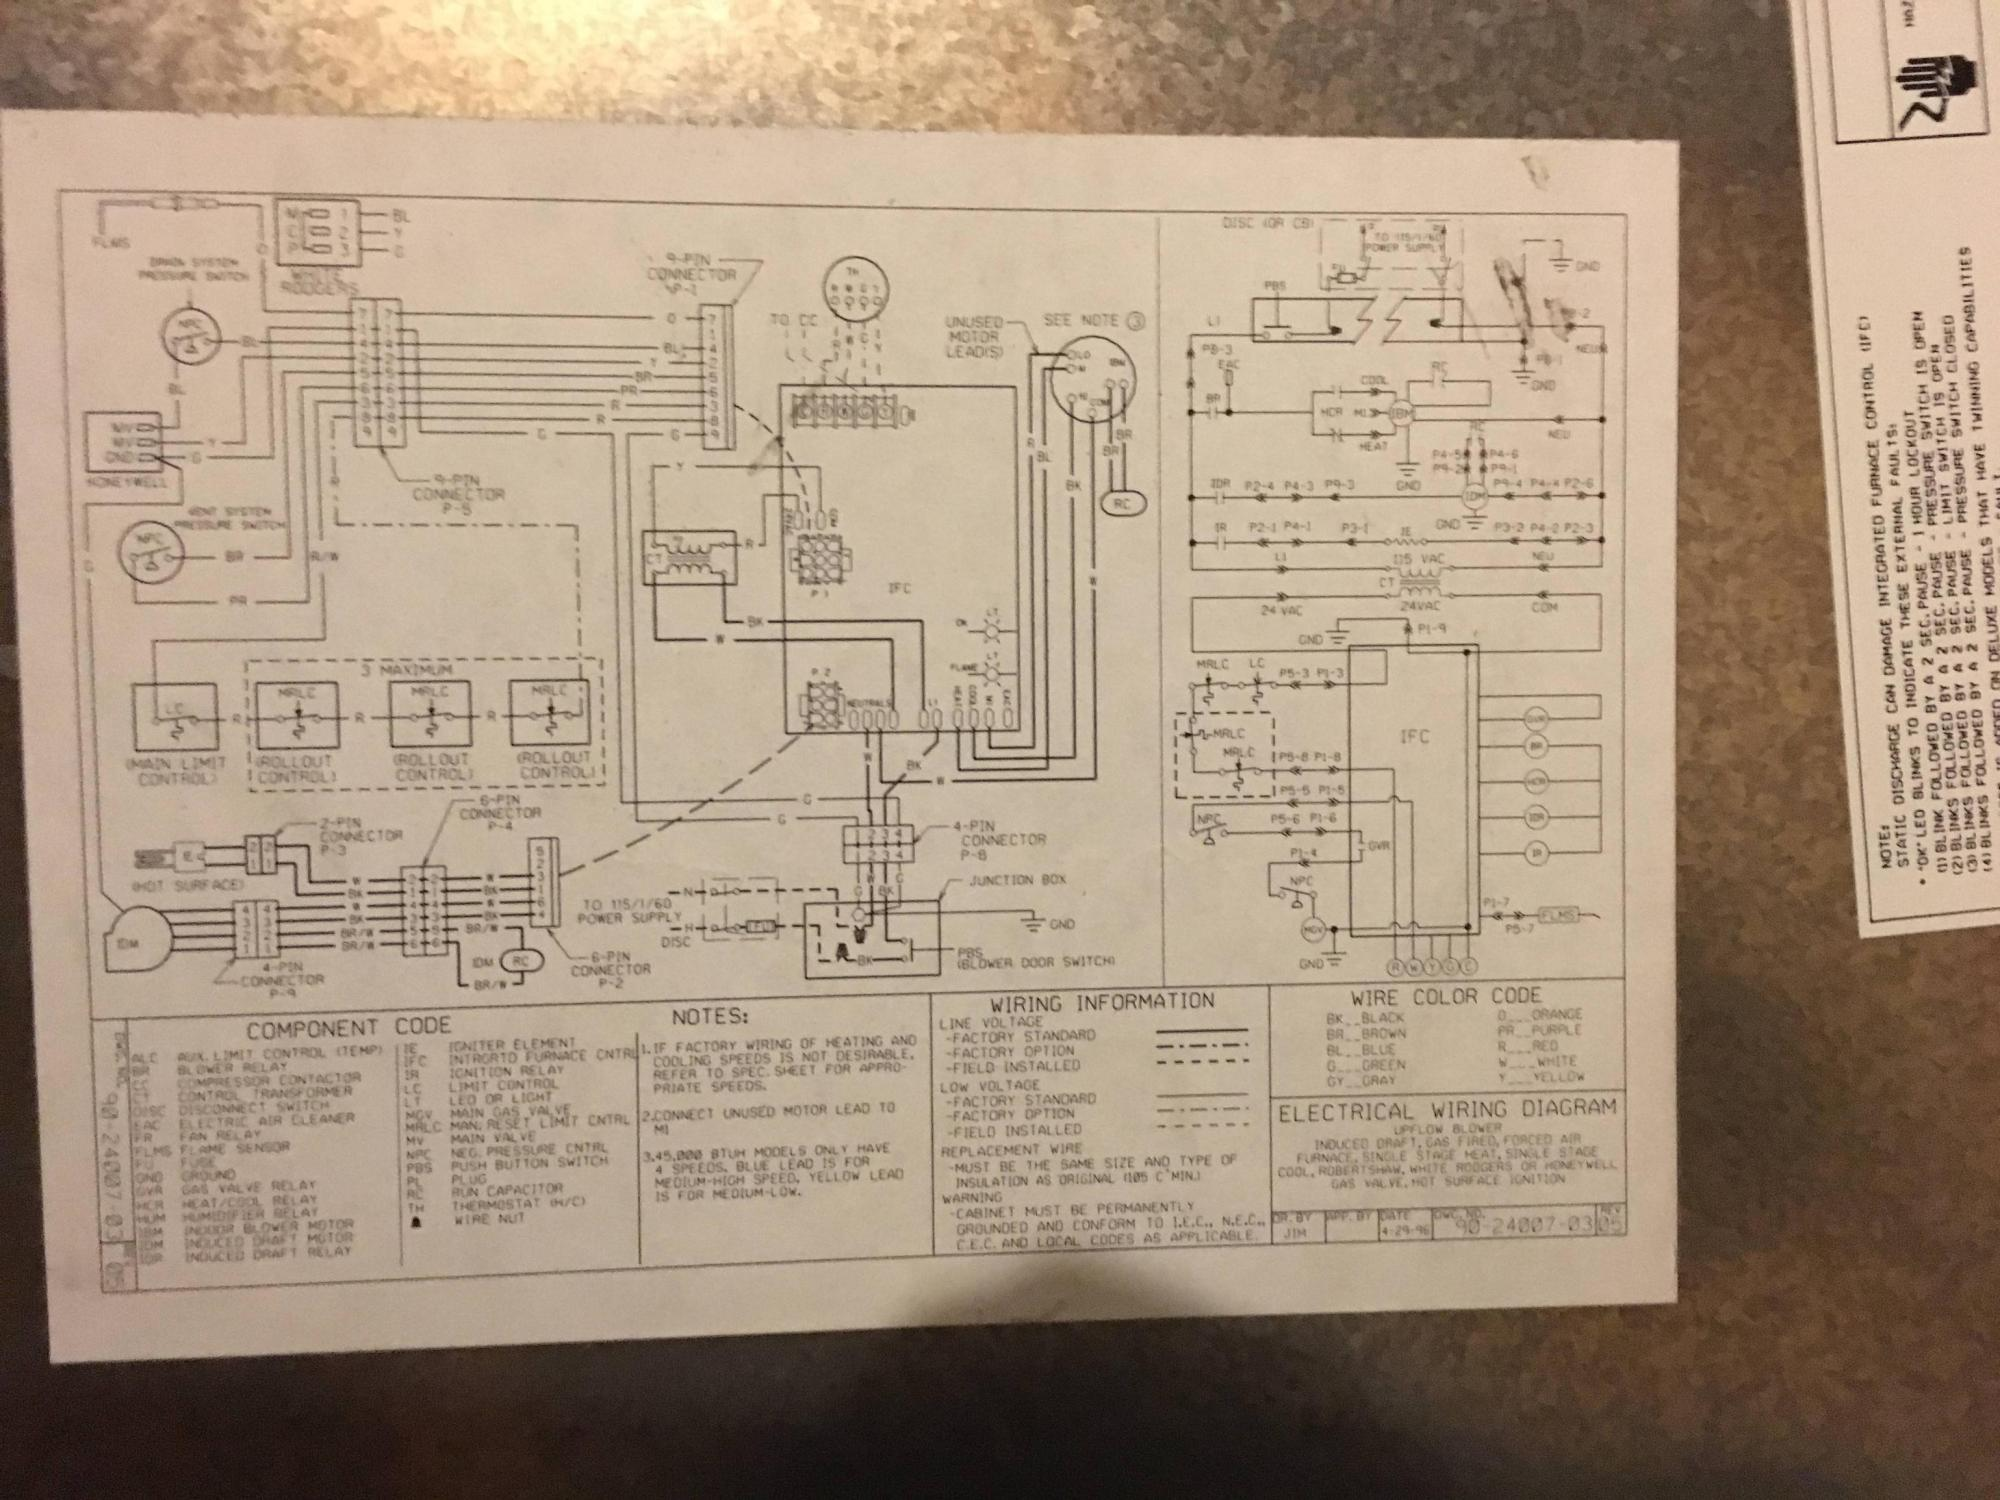 hight resolution of also the ifc model number is 1012 925a and the hvac unit is a rheem classic 90 plus i don t know the if the number on the wiring diagram is the model